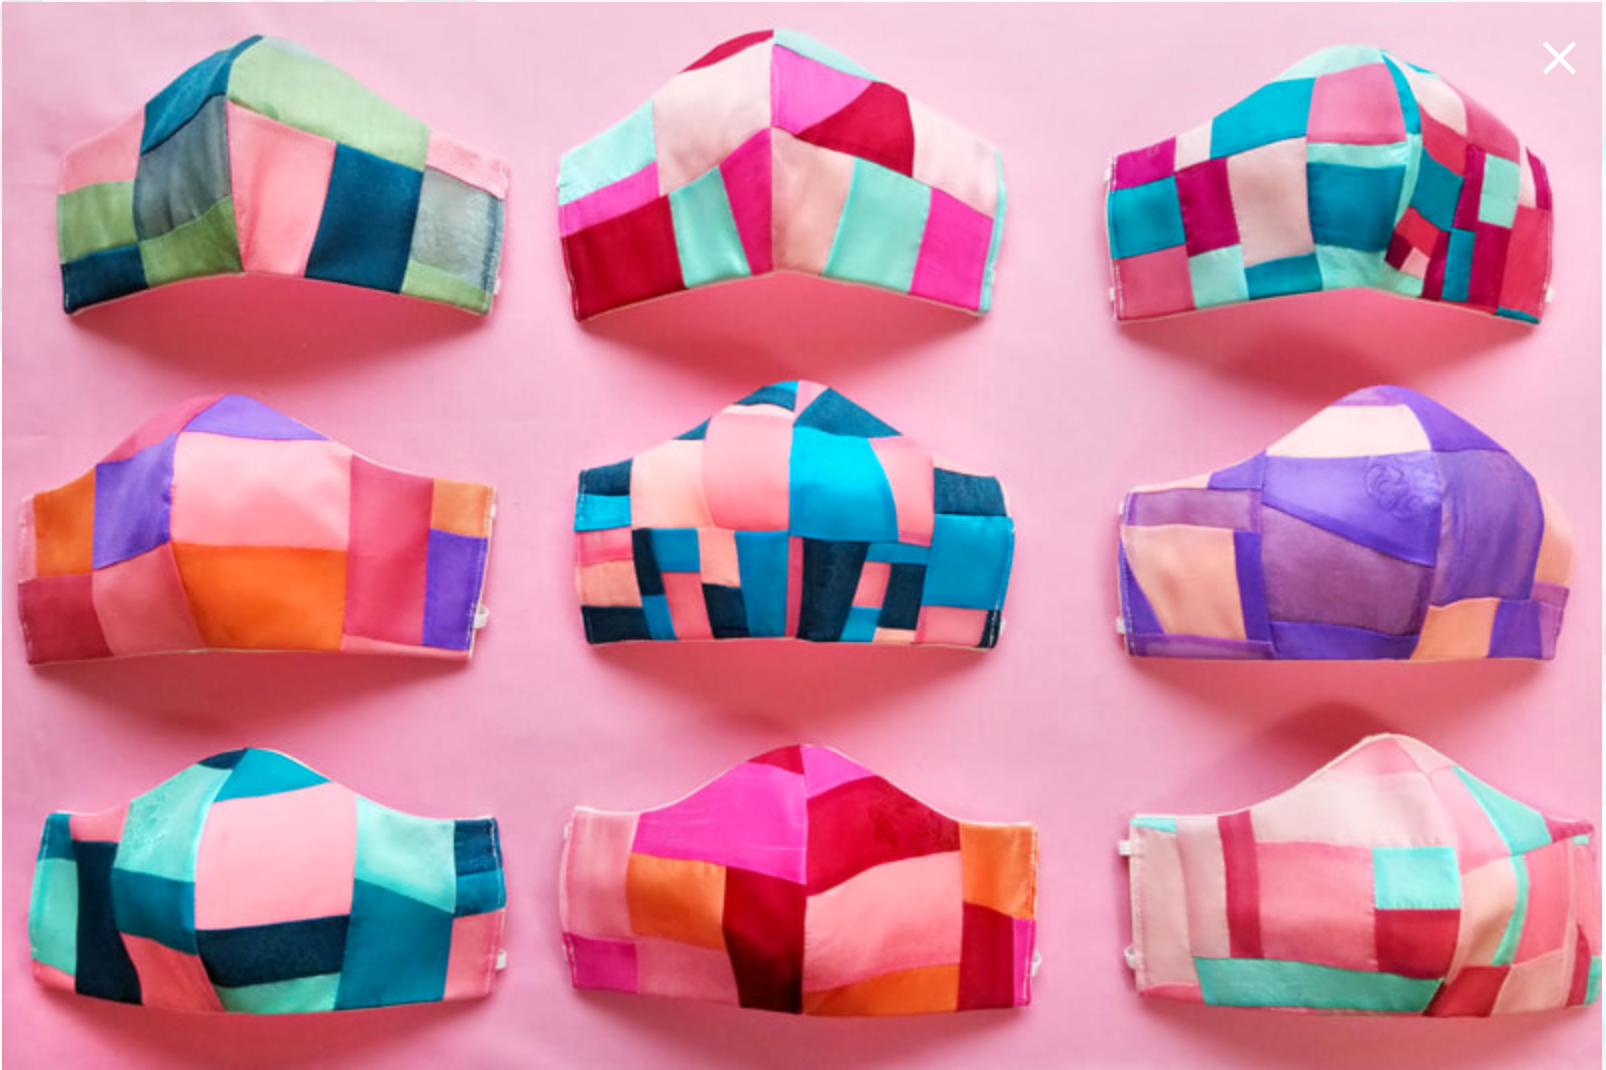 A three by three grid of nine masksk, each a colorful patchwork of fabrics, set on abright pink background.